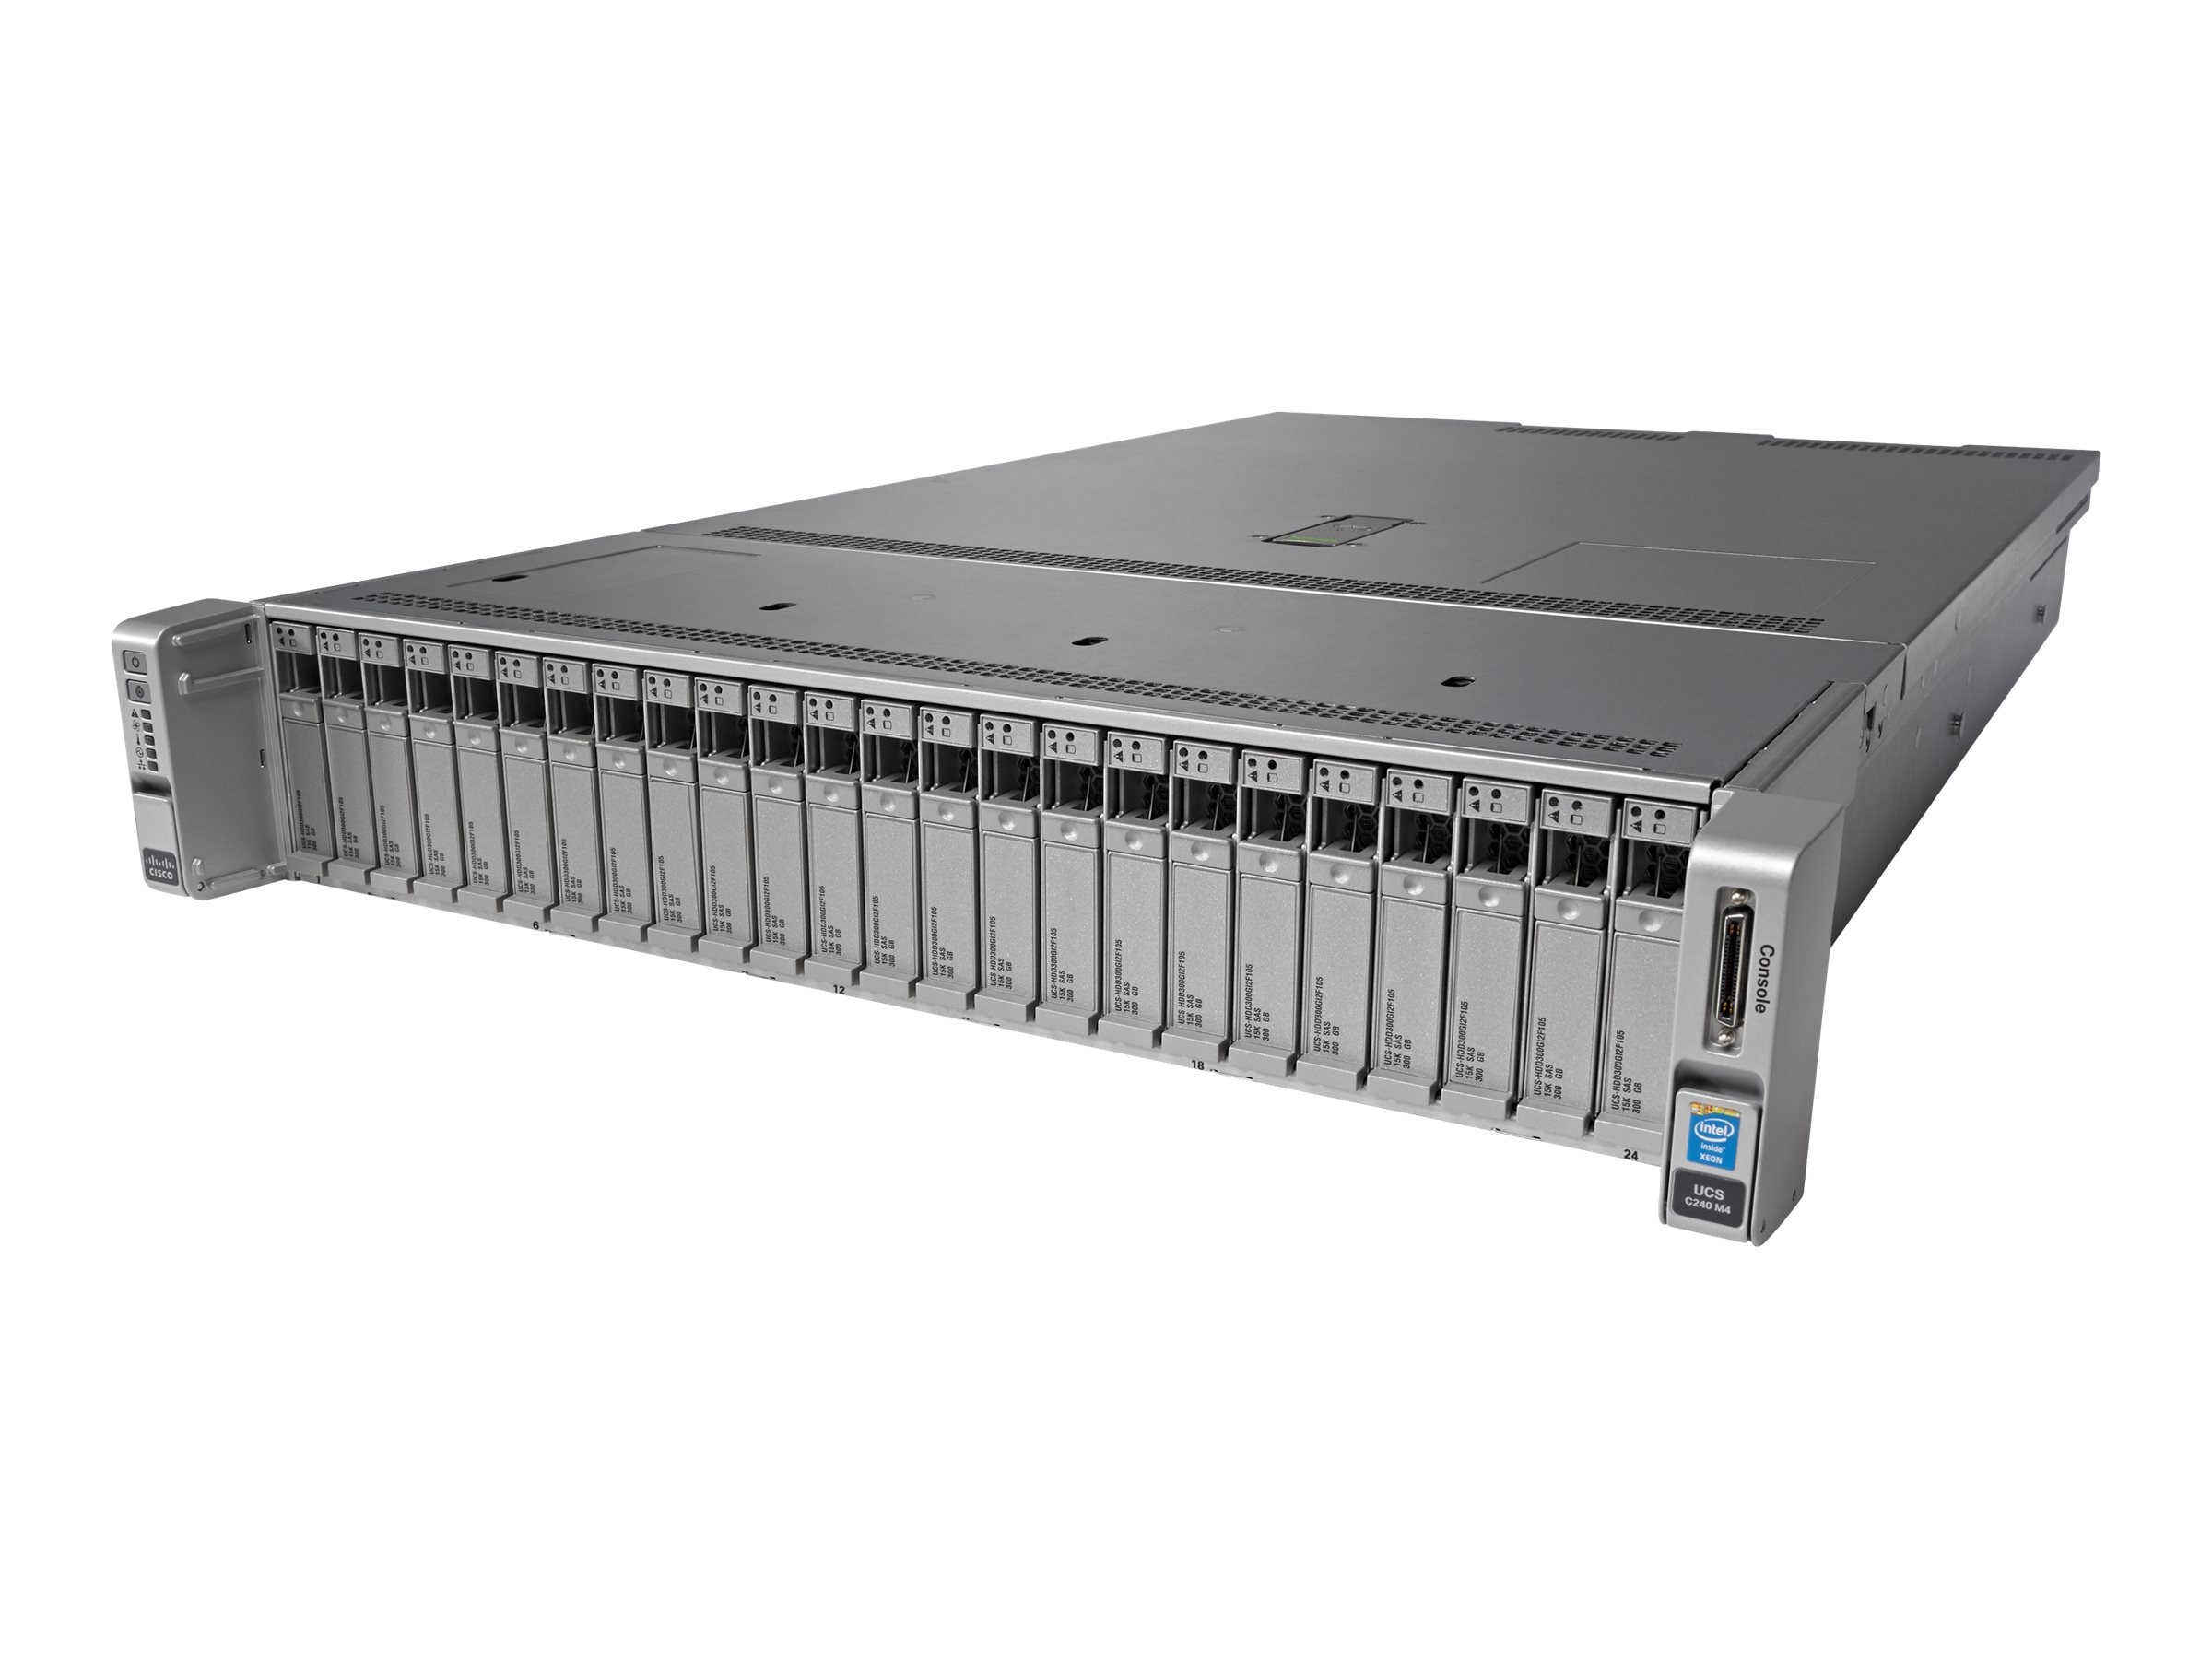 Cisco UCS-SPR-C240M4-BS1 Image 1